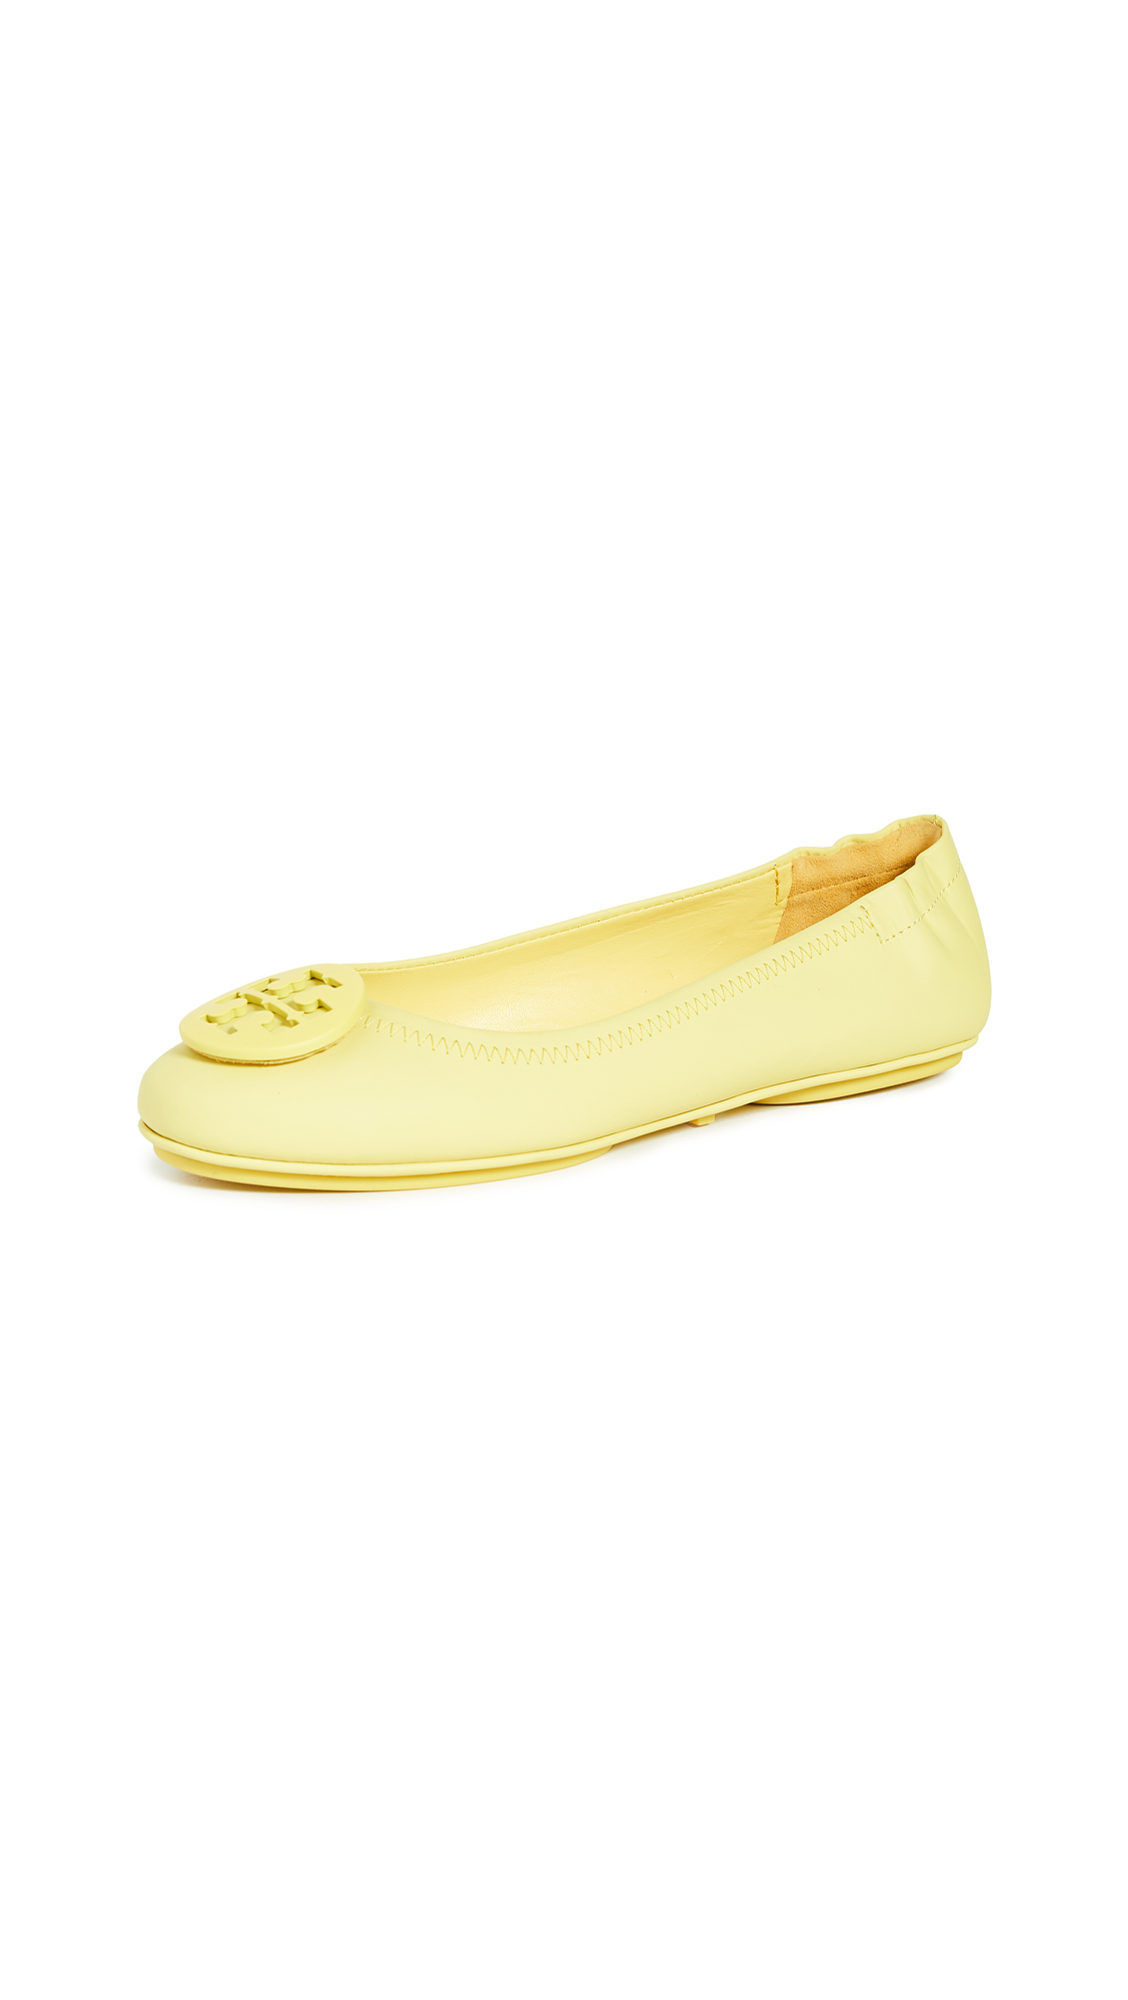 Tory Burch Exclusive Minnie Travel Ballet Flats - 30% Off Sale